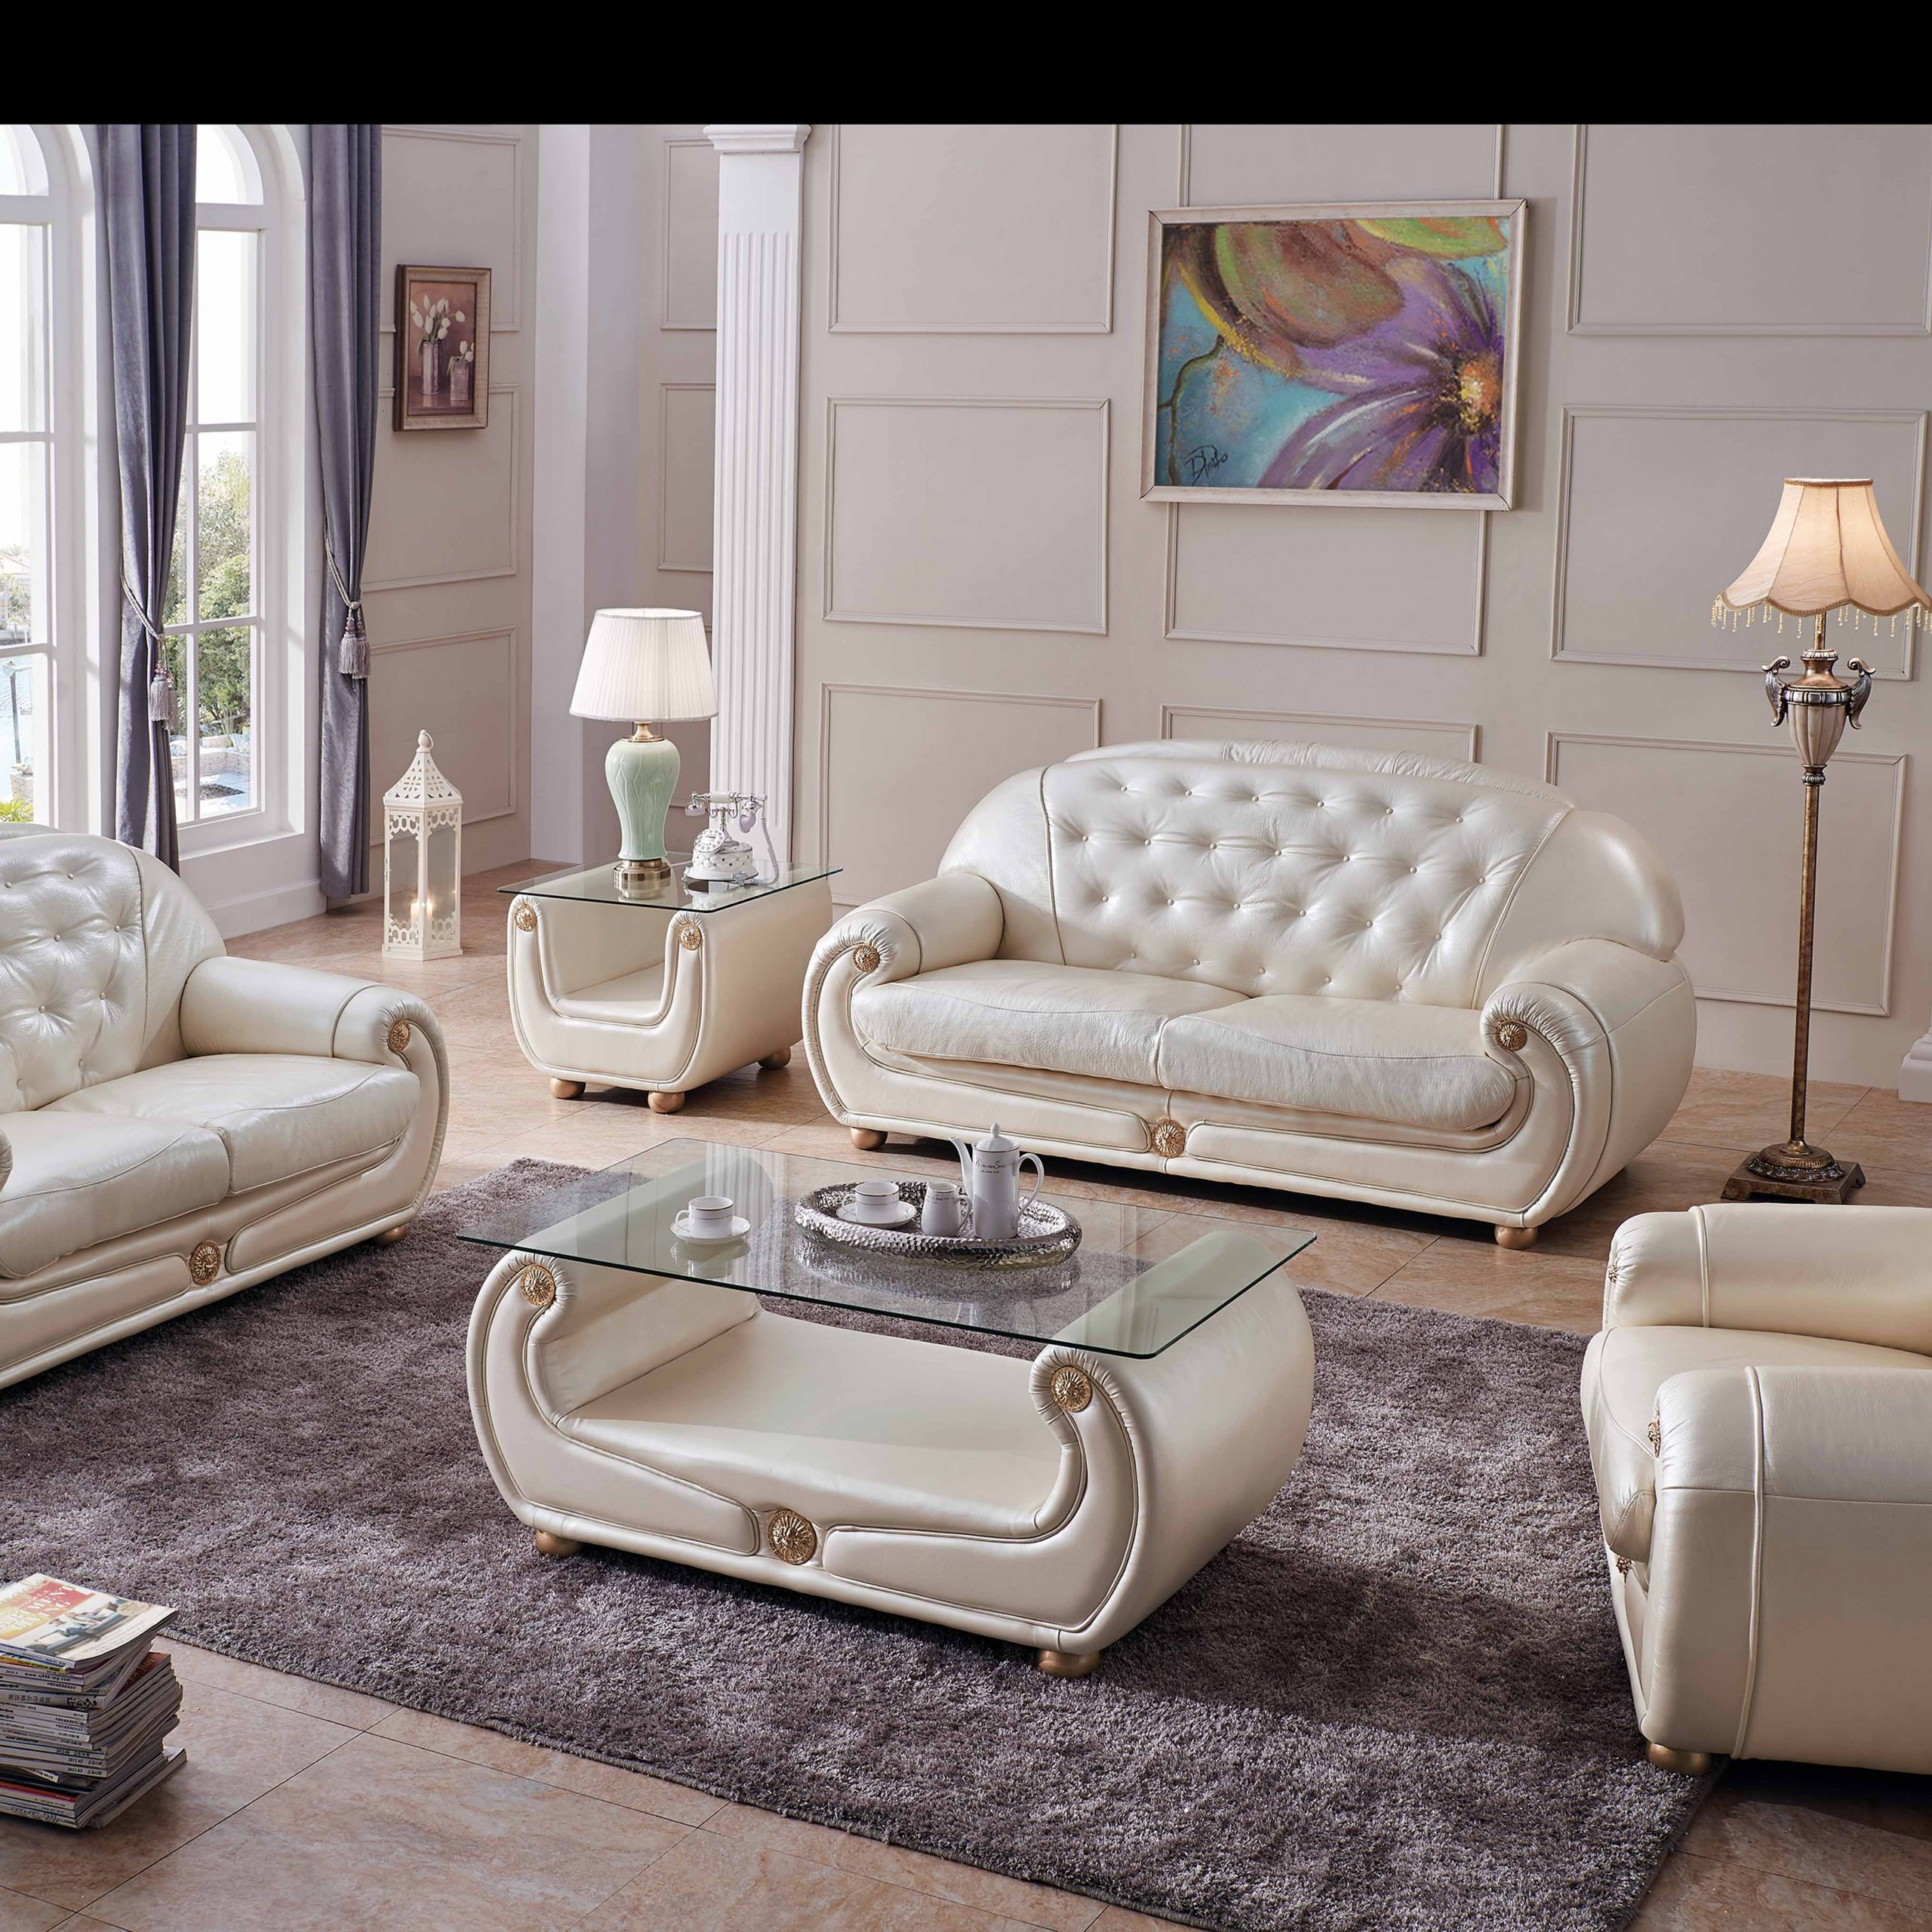 Giza Full Leather In Beige, Sofas Loveseats And Chairs With Regard To Living Room Sofa And Chair Sets (View 5 of 15)